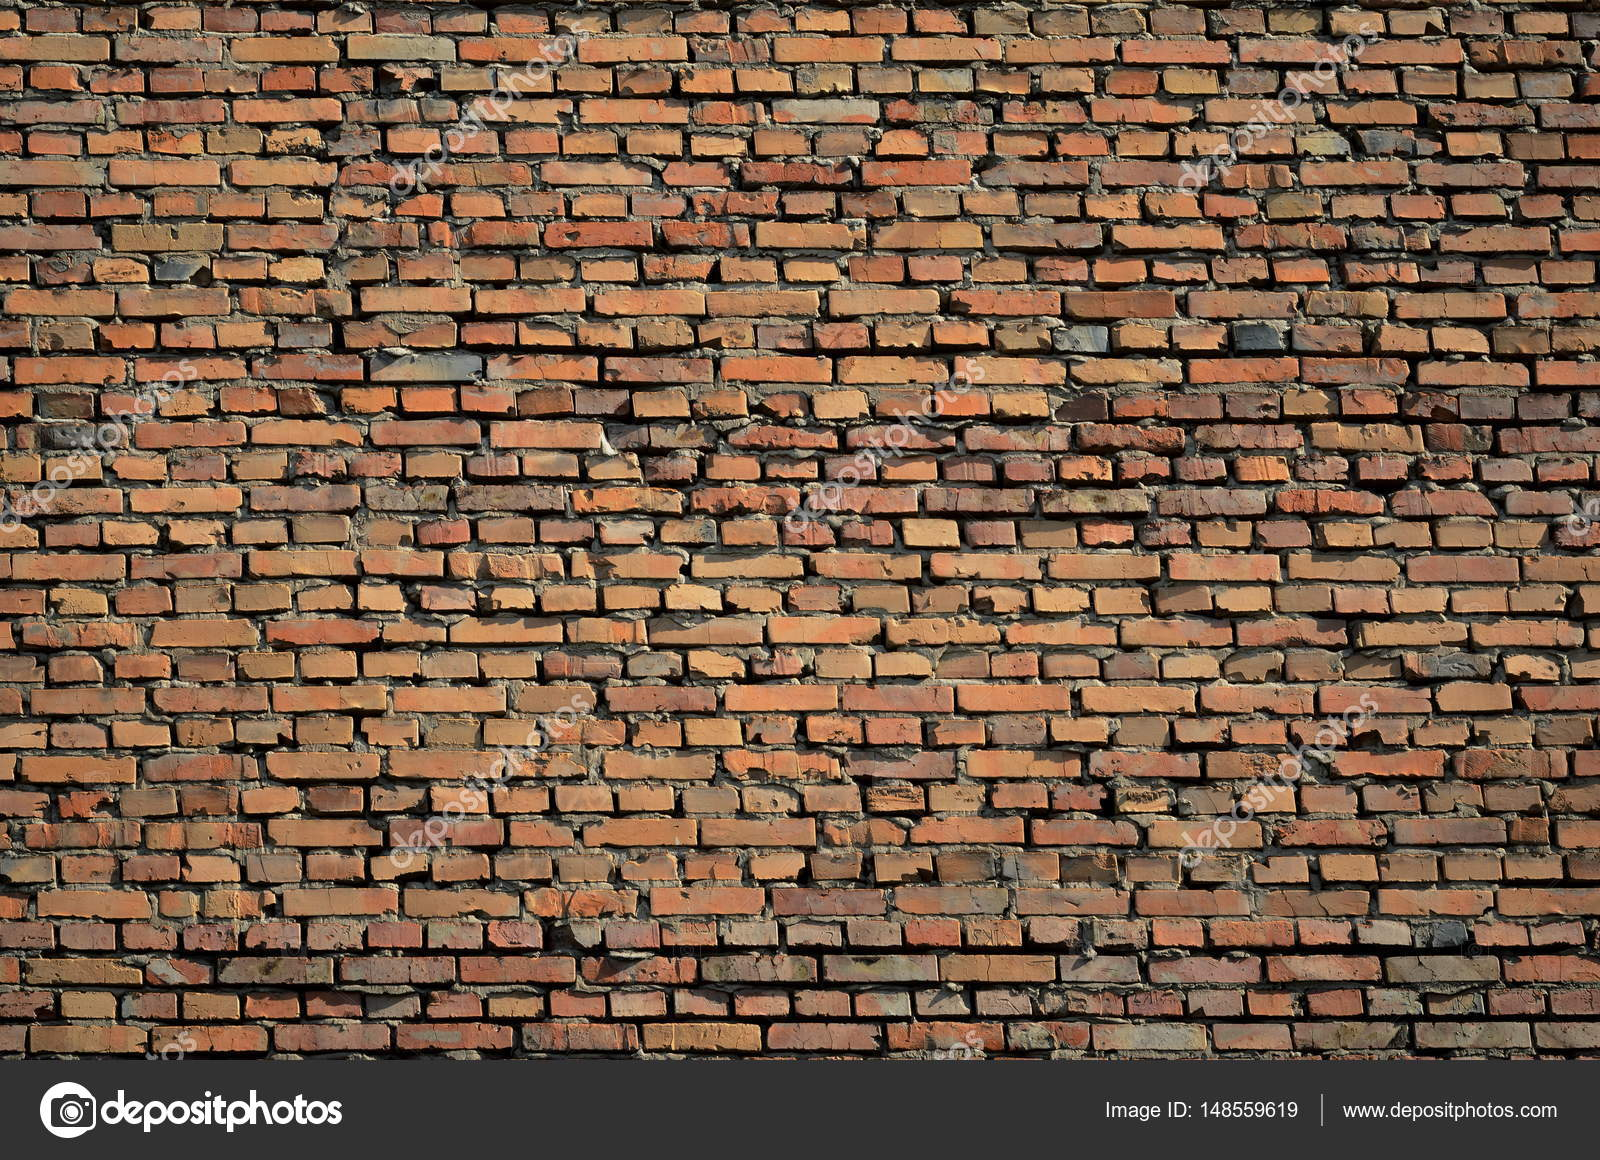 Texture Of A Vintage Rustic Old Red Brick Wall Background Stock Photo